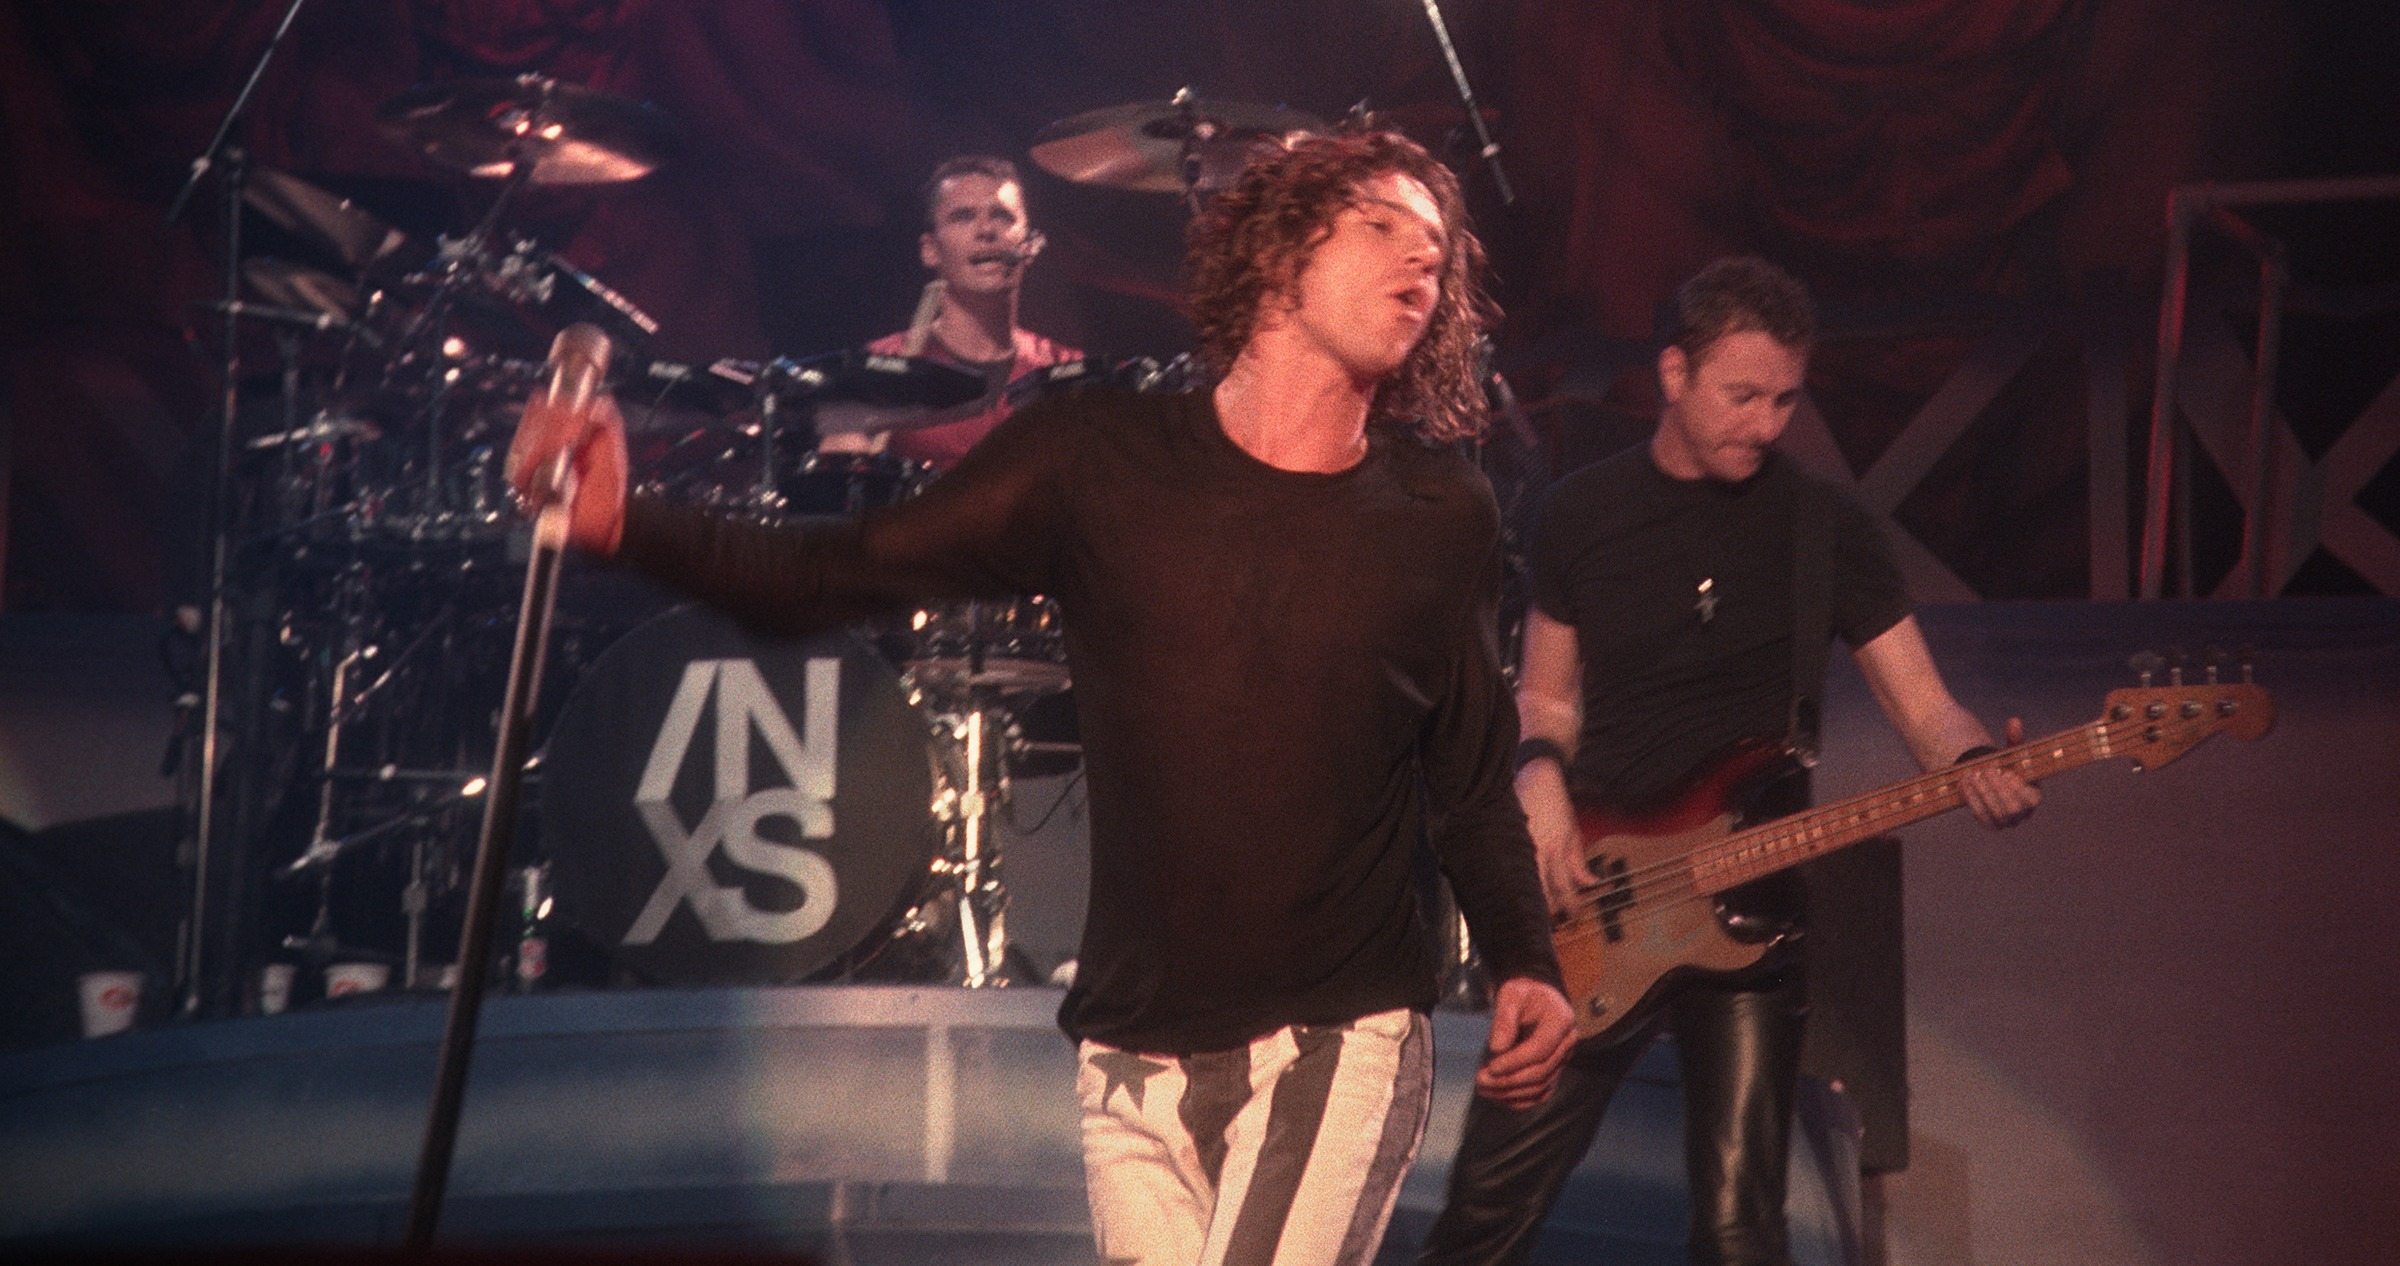 INXS announce the release of 'Live Baby Live' in 4K Ultra High Definition on June 26th 1